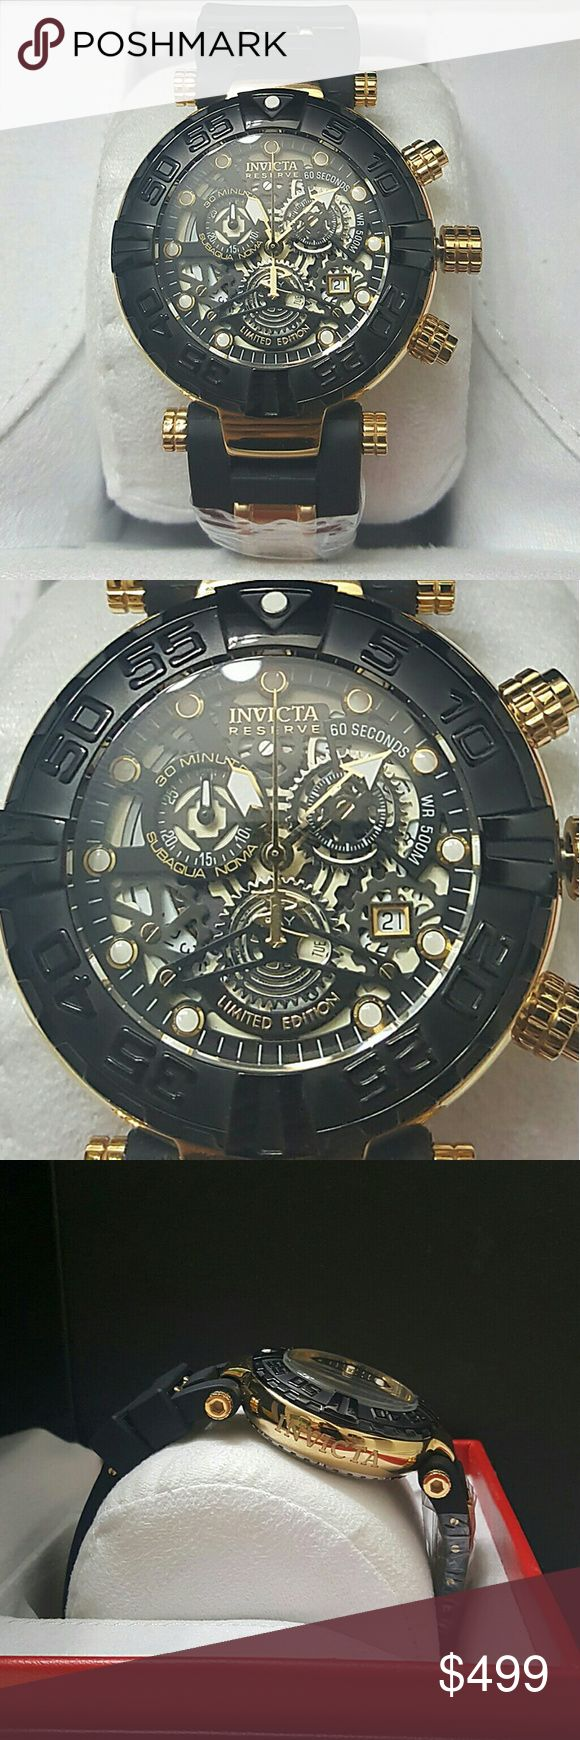 Weekend sale,$6000 Invicta limited edition watch Weekend sale, firm price   Brand new Invicta Reserve limited edition black and black watch.  Firm price firm price  $499.00 . AUTHENTIC WATCH  . AUTHENTIC BOX  . AUTHENTIC MANUAL  . AUTHENTIC INVICTA CLOTH  .AUTHENTIC INVICTA WARRANTY CARD  SHIPPING  PLEASE ALLOW 2 BUSINESS DAYS FOR ME TO SHIPPED IT OFF.I HAVE TO GET IT FROM MY STORE.   Thank you for your understanding. Invicta Accessories Watches